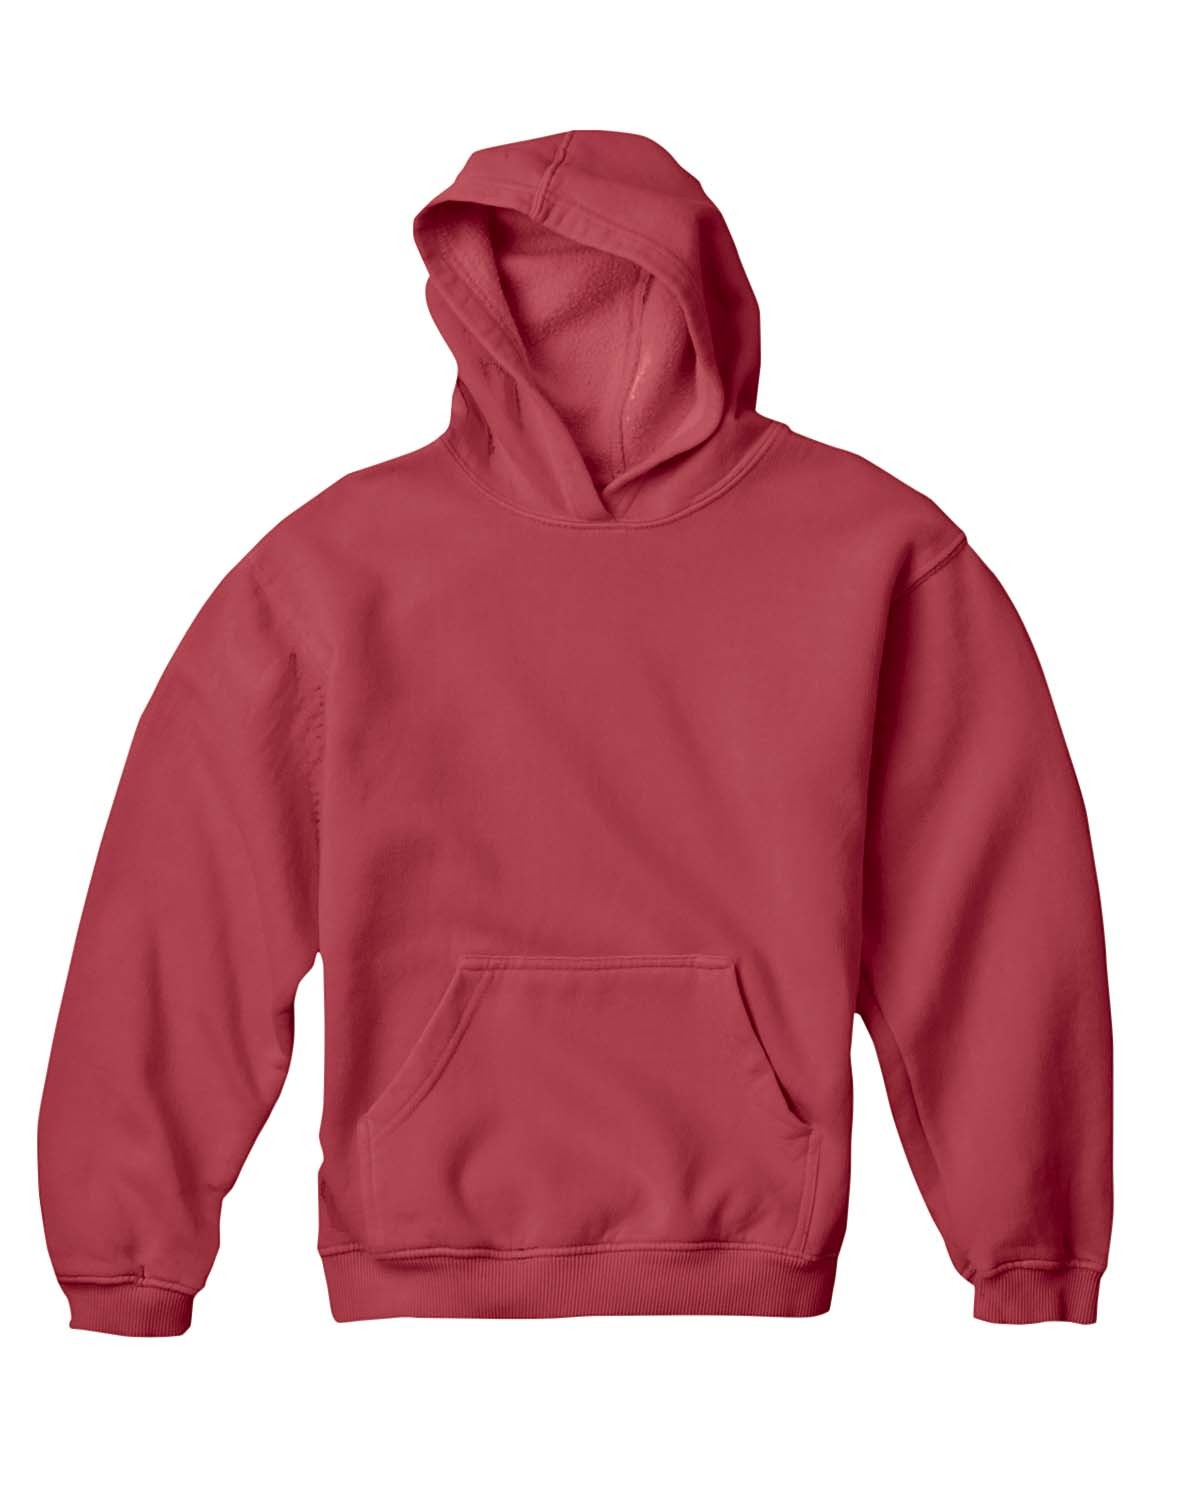 C8755 Comfort Colors Drop Ship CRIMSON